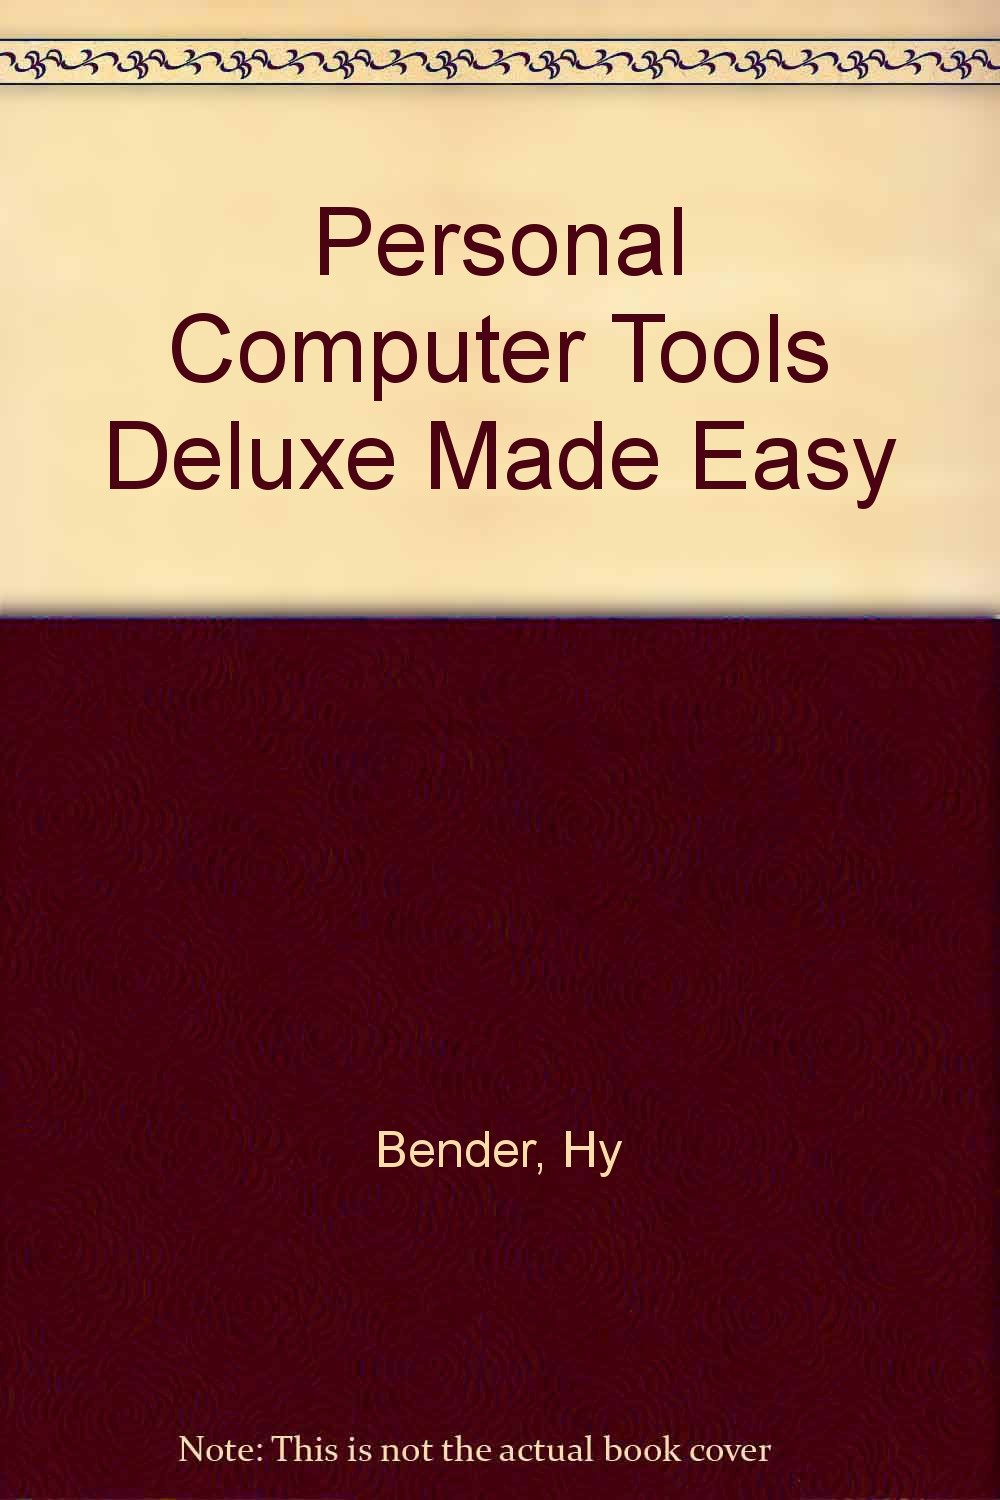 Personal Computer Tools Deluxe Made Easy